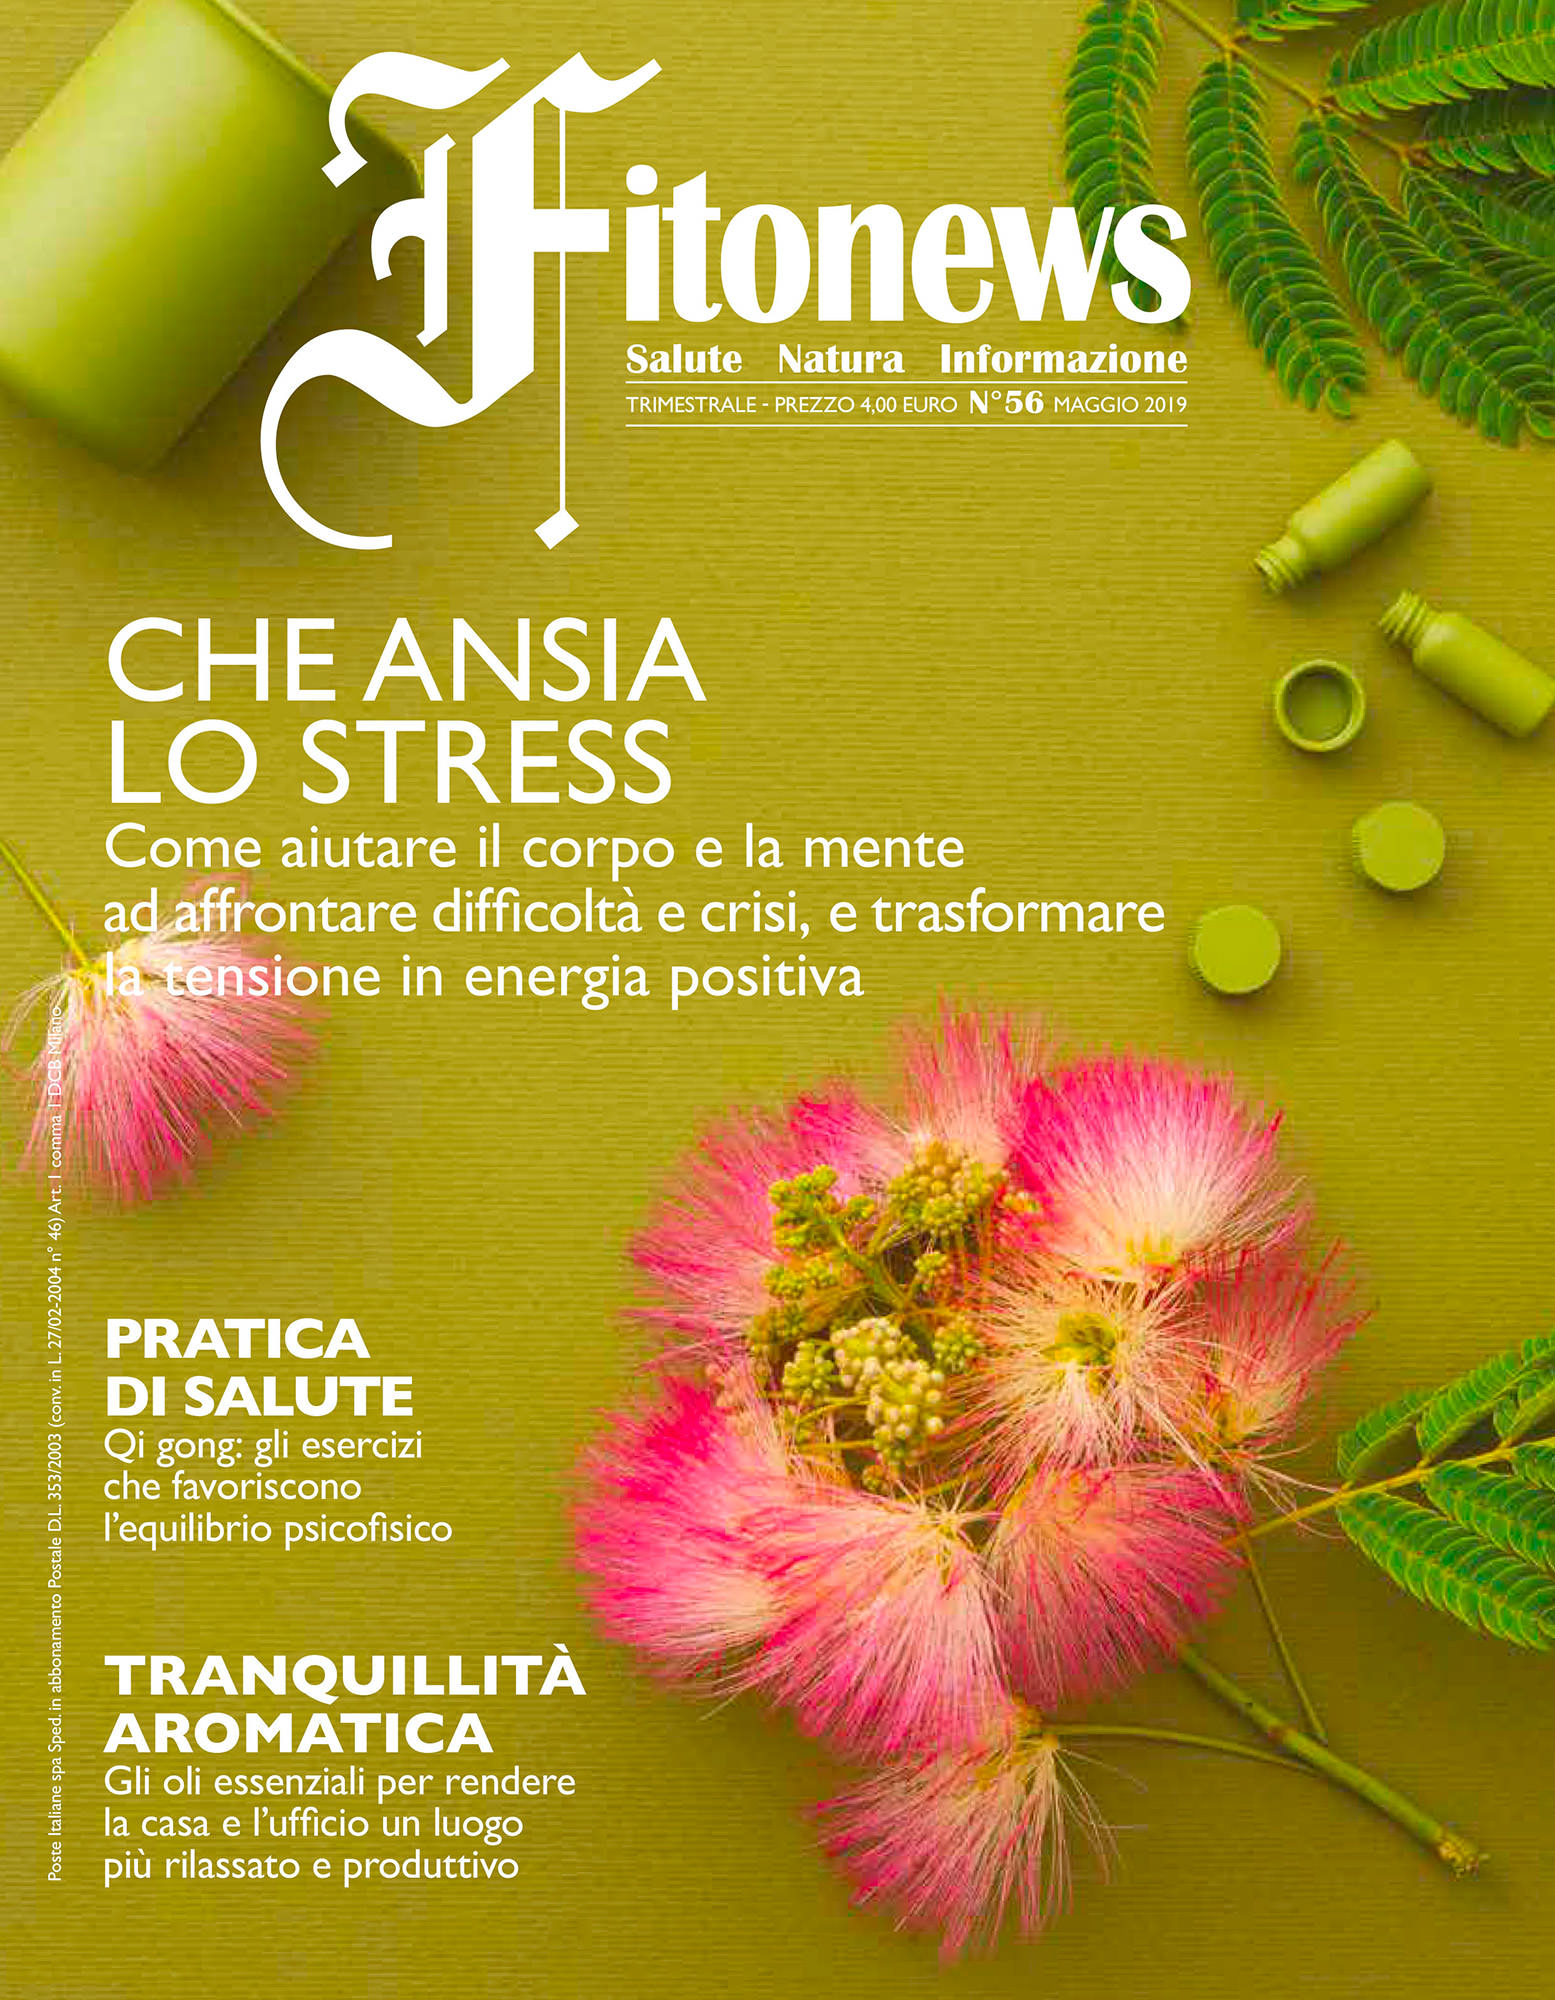 Serenday – Fitonews n°56/2019